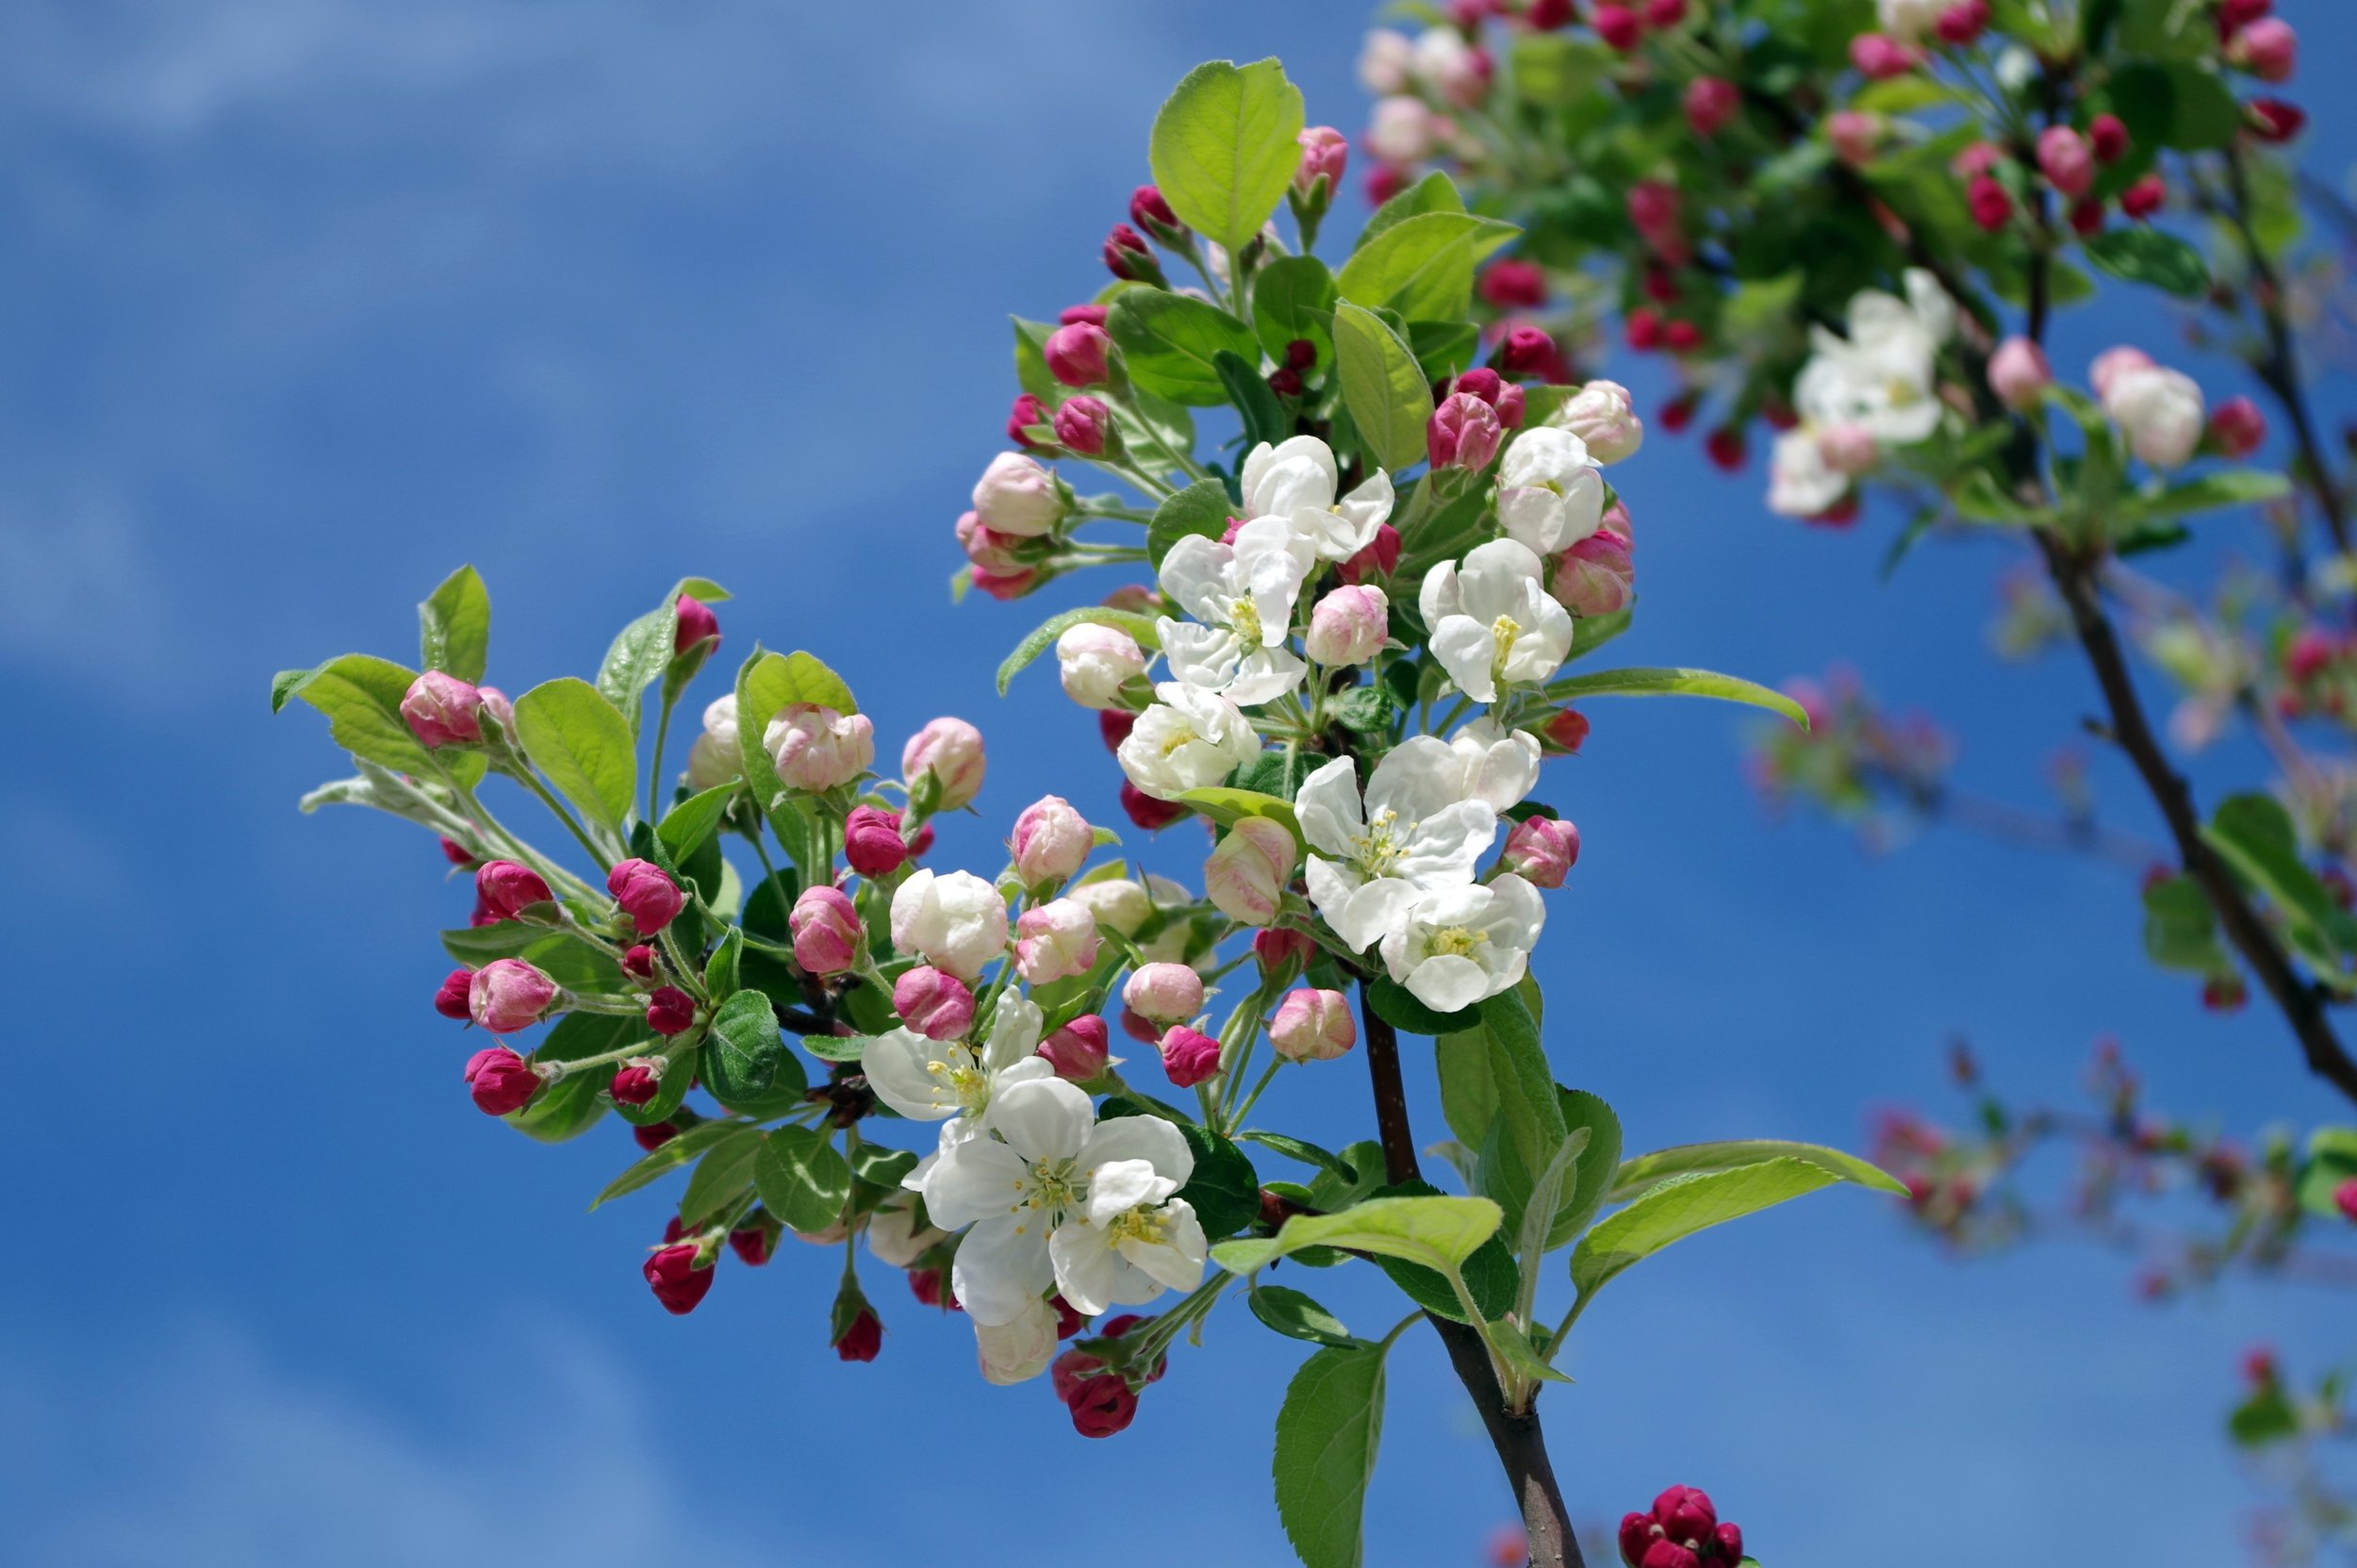 apple-blossom-bloom-blooms-67286.jpg